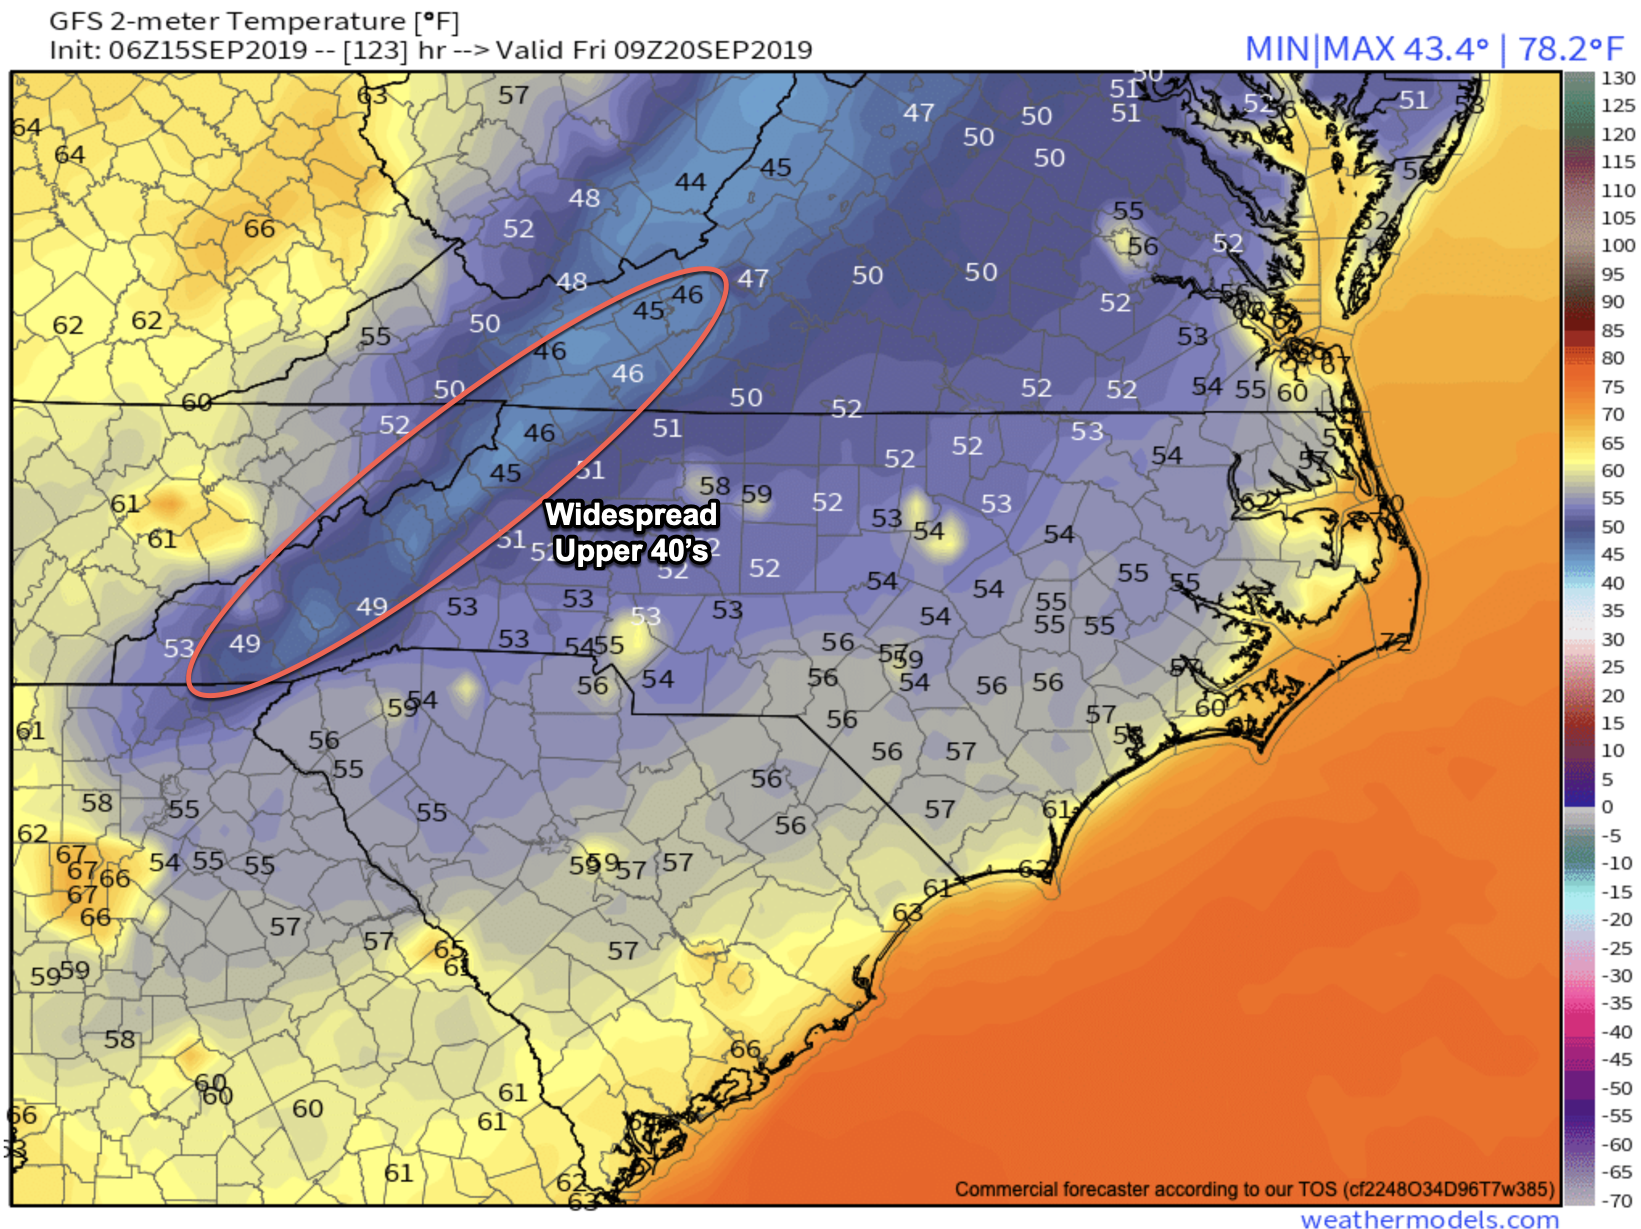 Friday Am Temps Per 6z GFS Courtesy of  Weathermodels.com